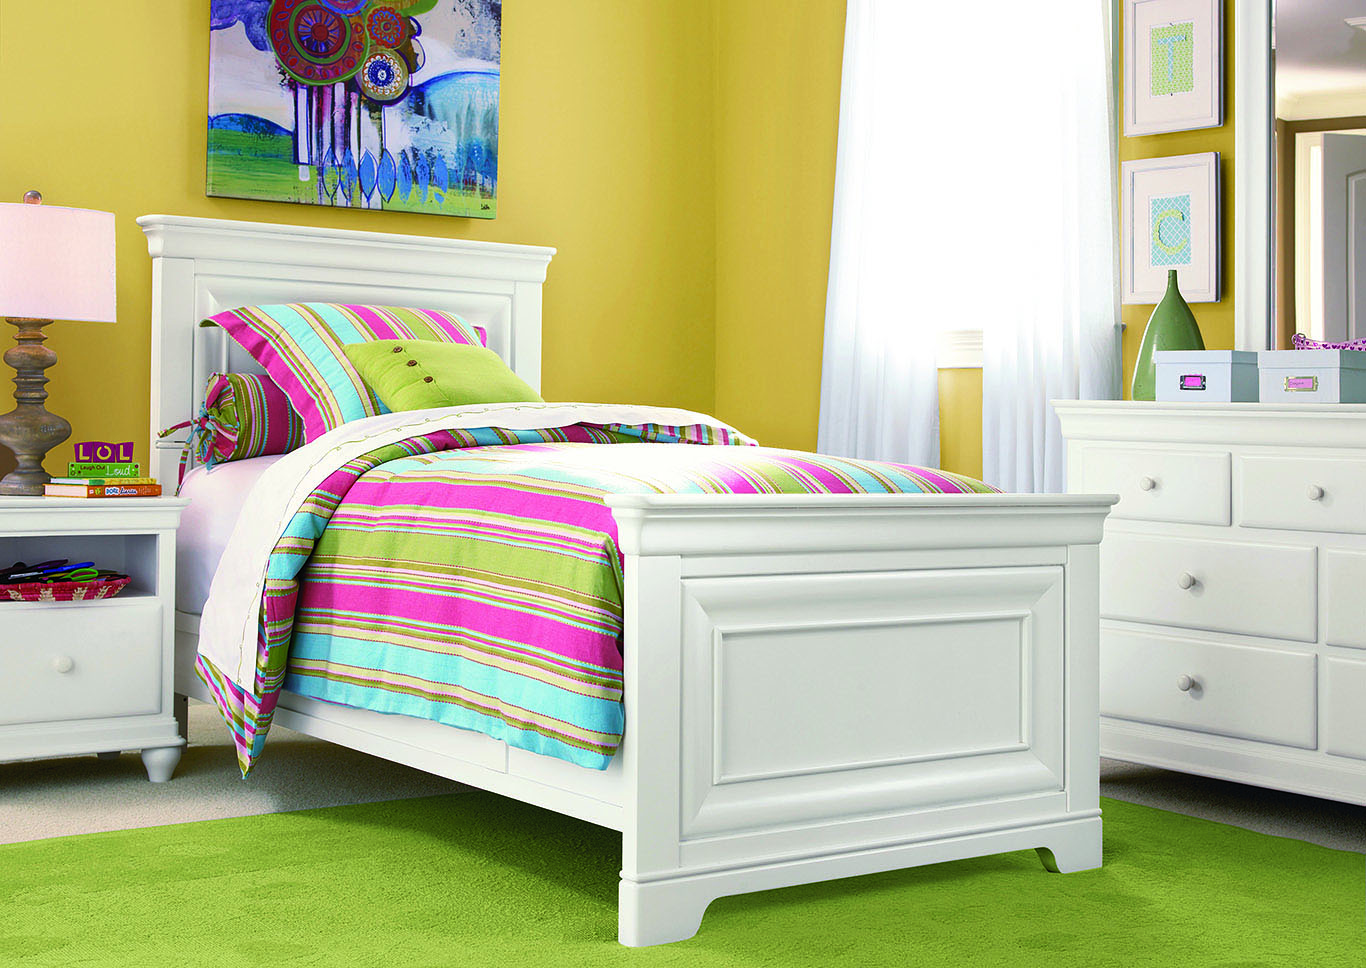 Rylie Twin Bed White,Universal